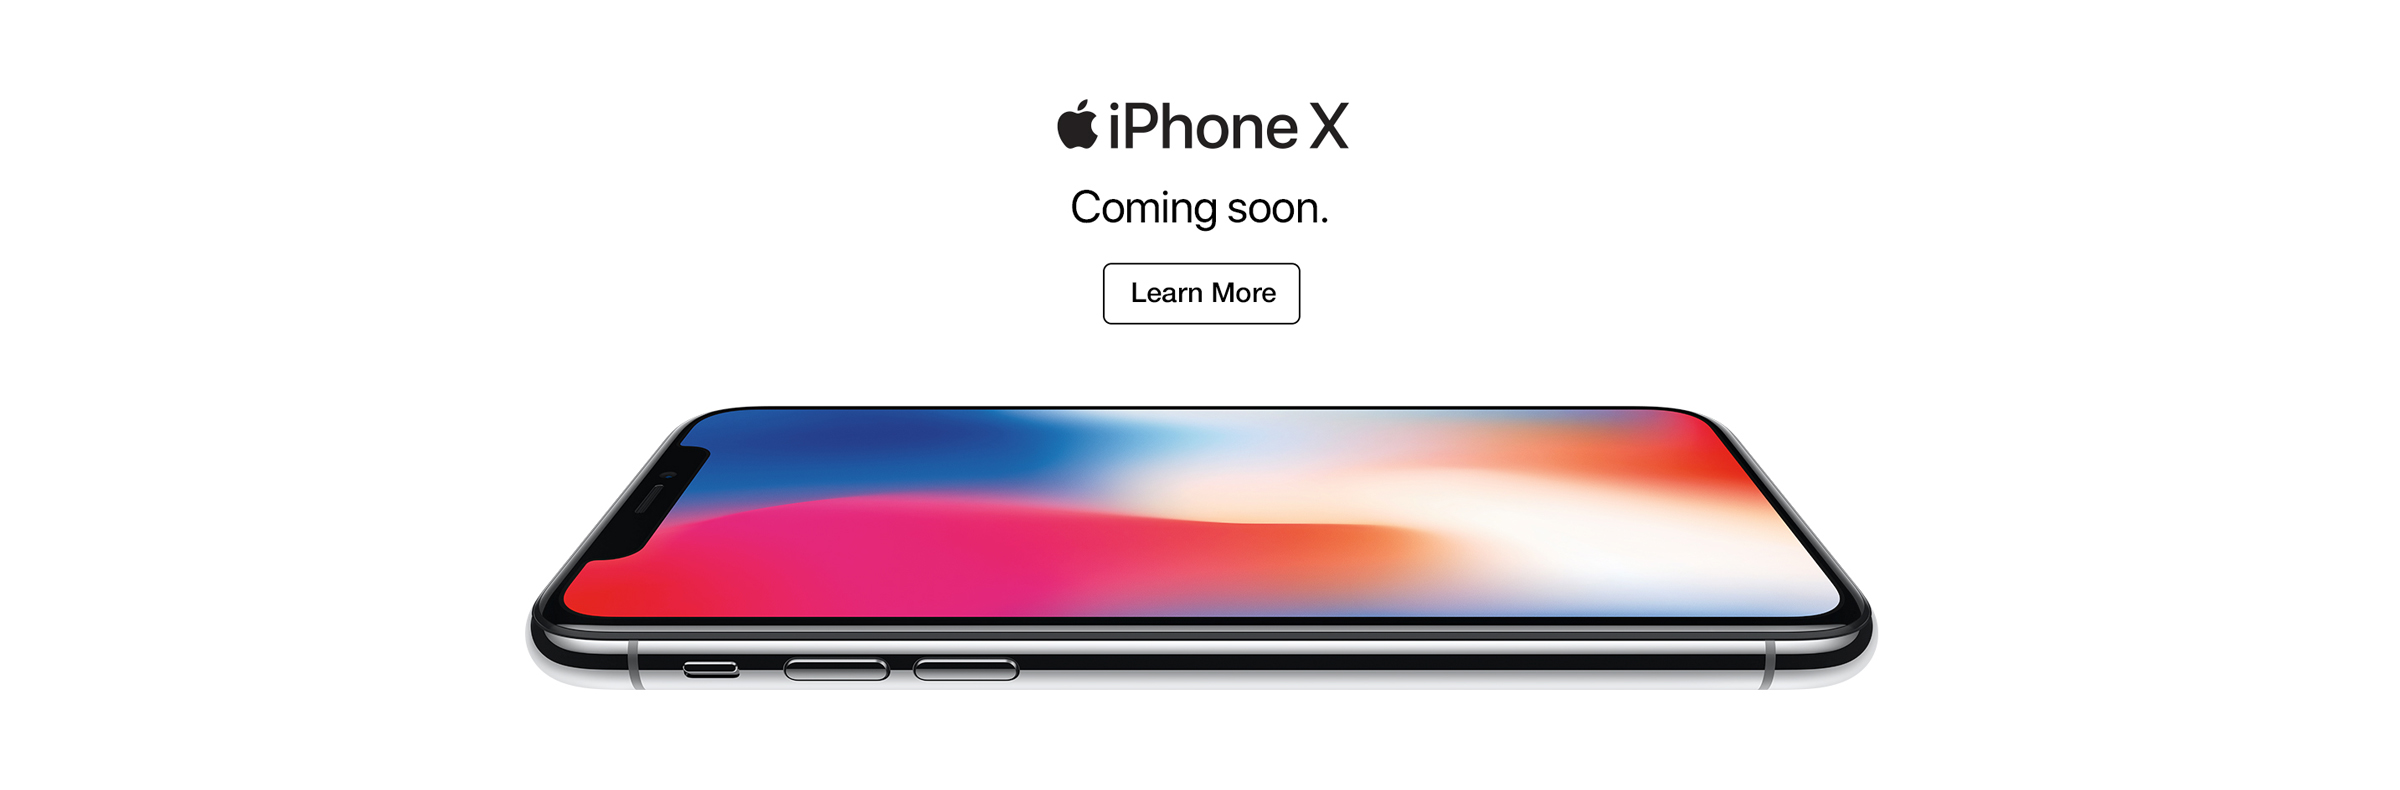 iPhone X is Coming Soon to WIRELESSWAVE